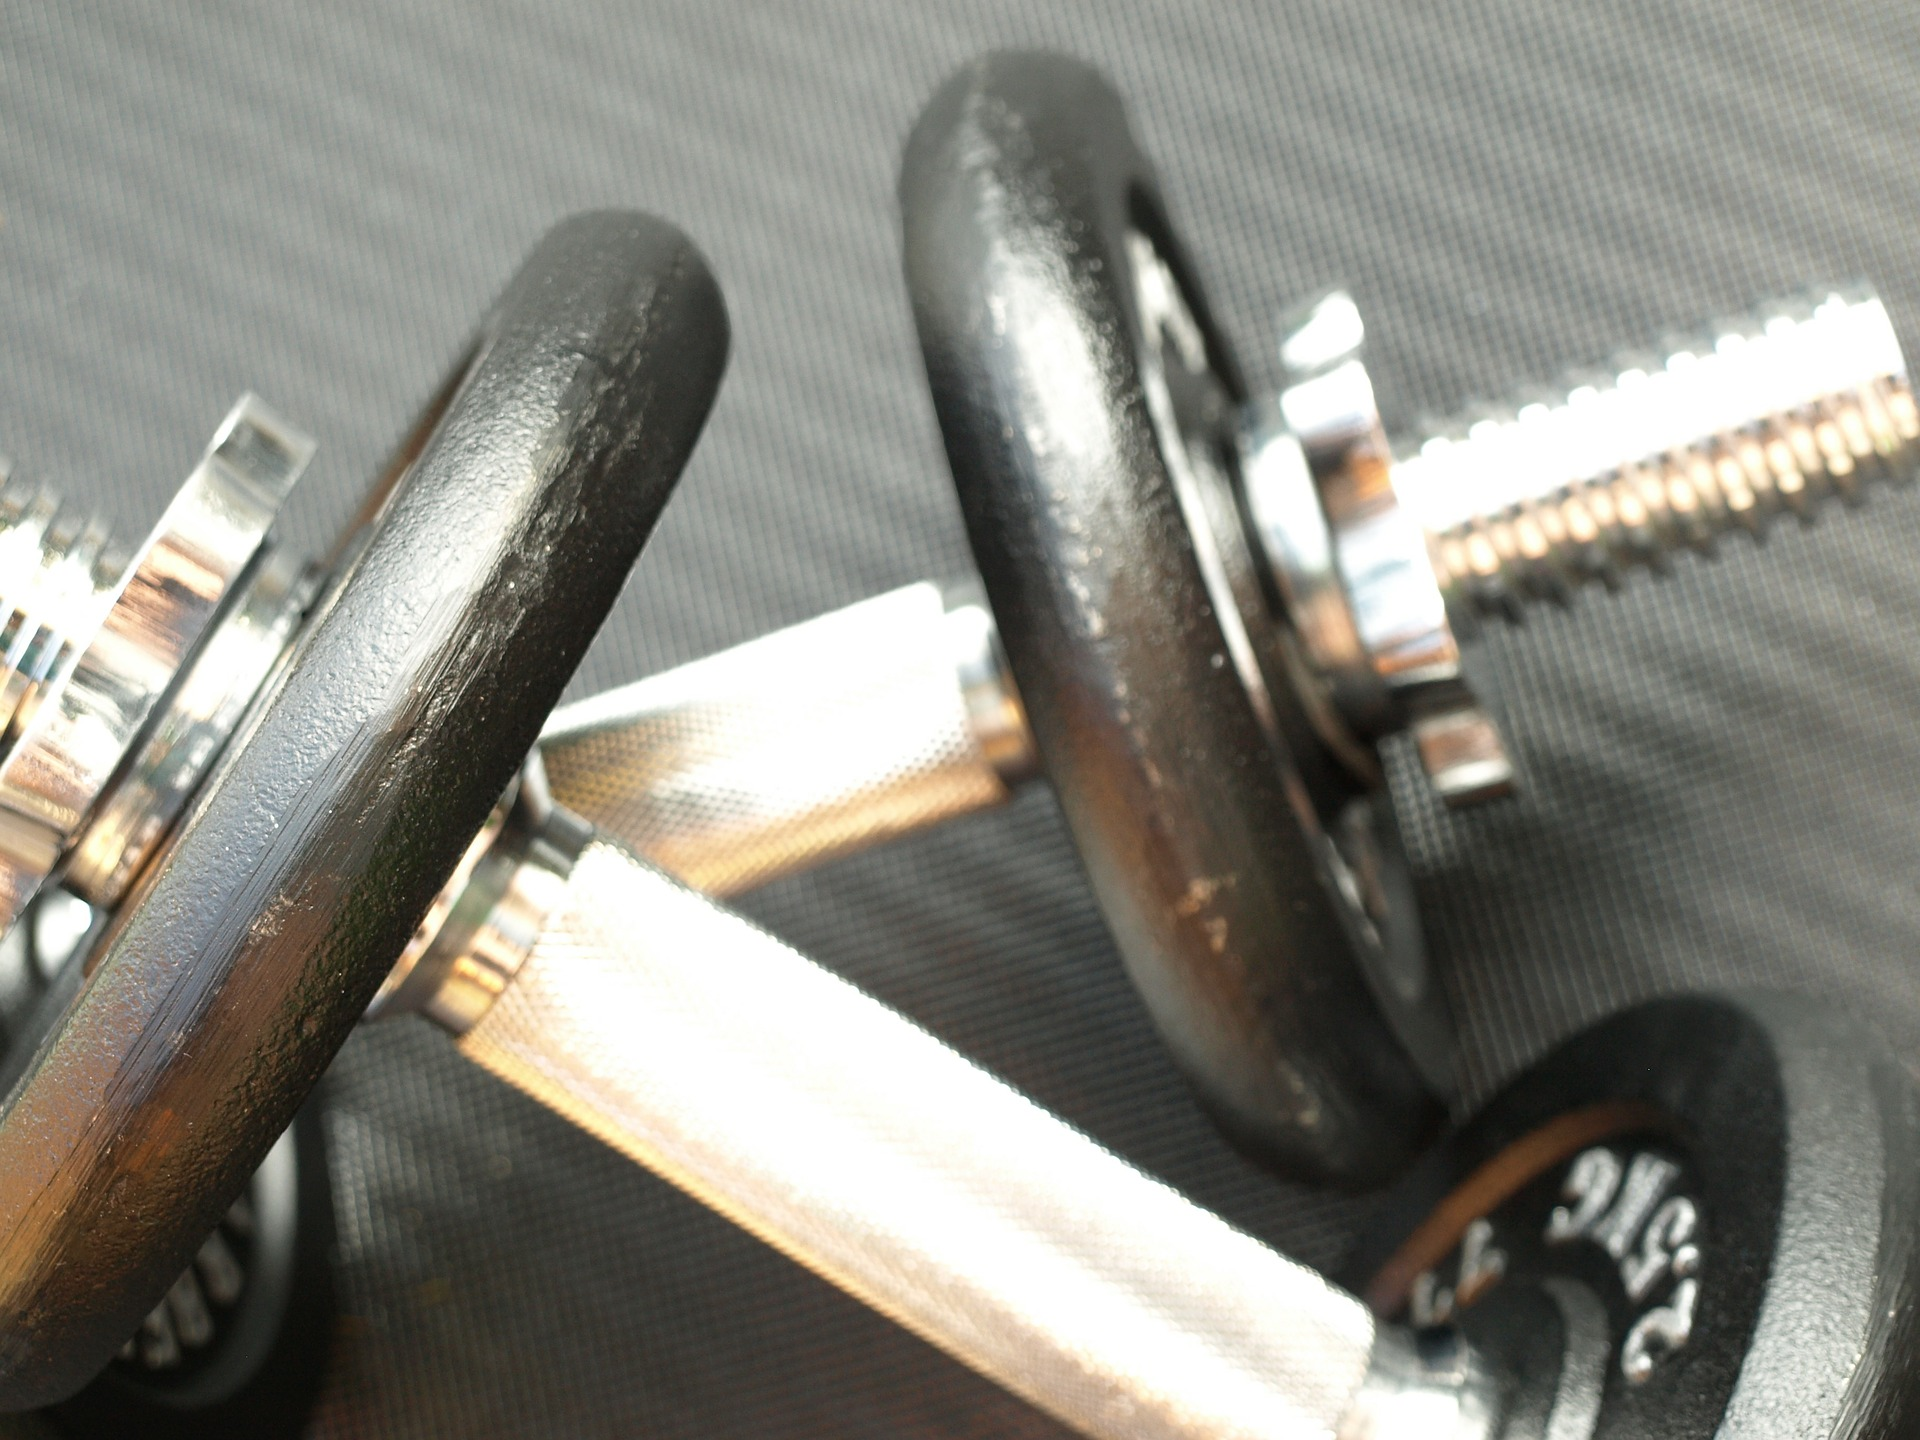 dumbbell pair 299533 1920